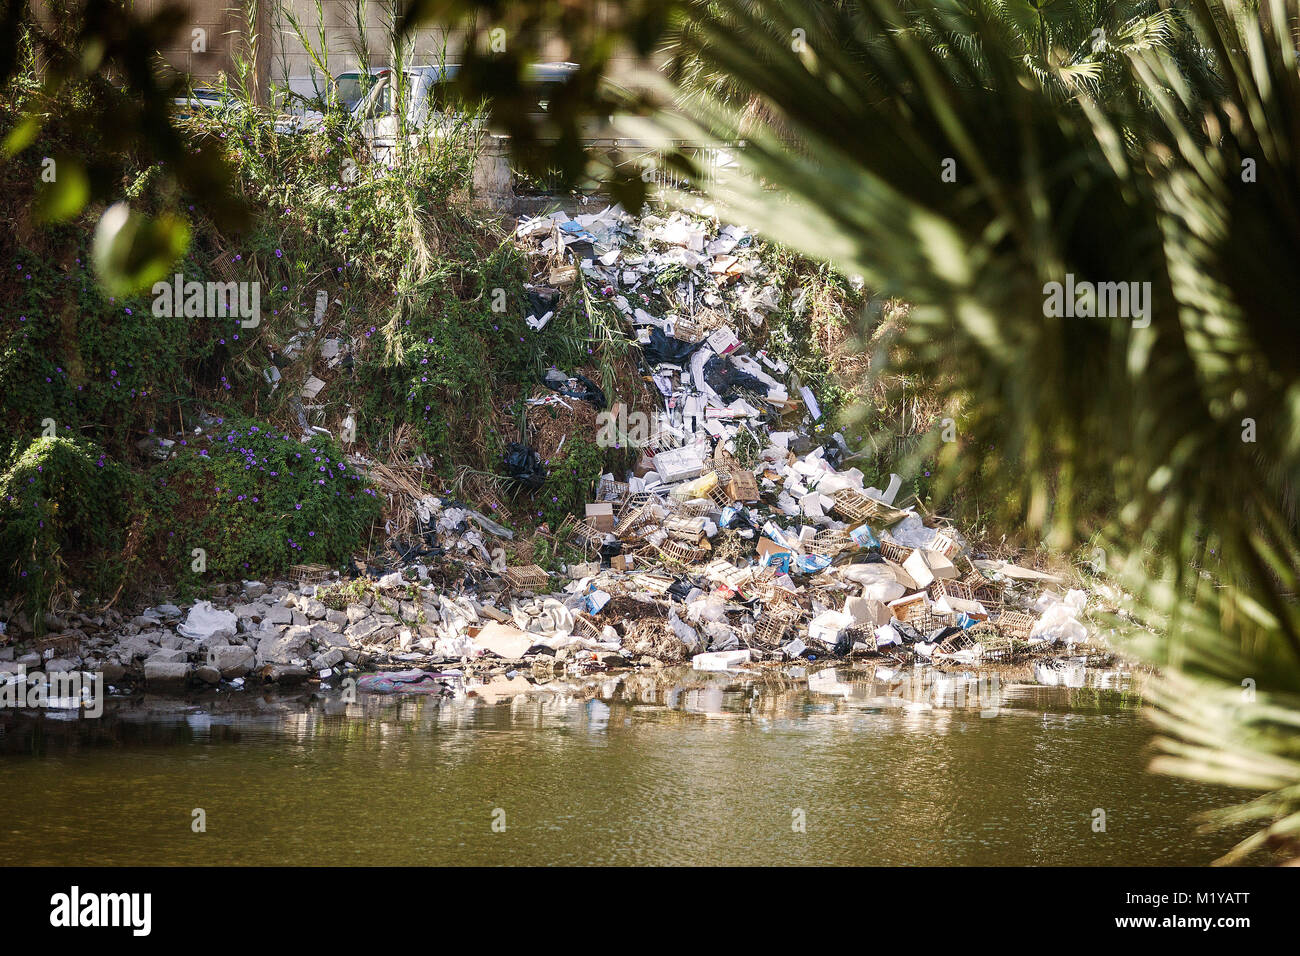 River filled with trash and plastic ecological disaster - Stock Image